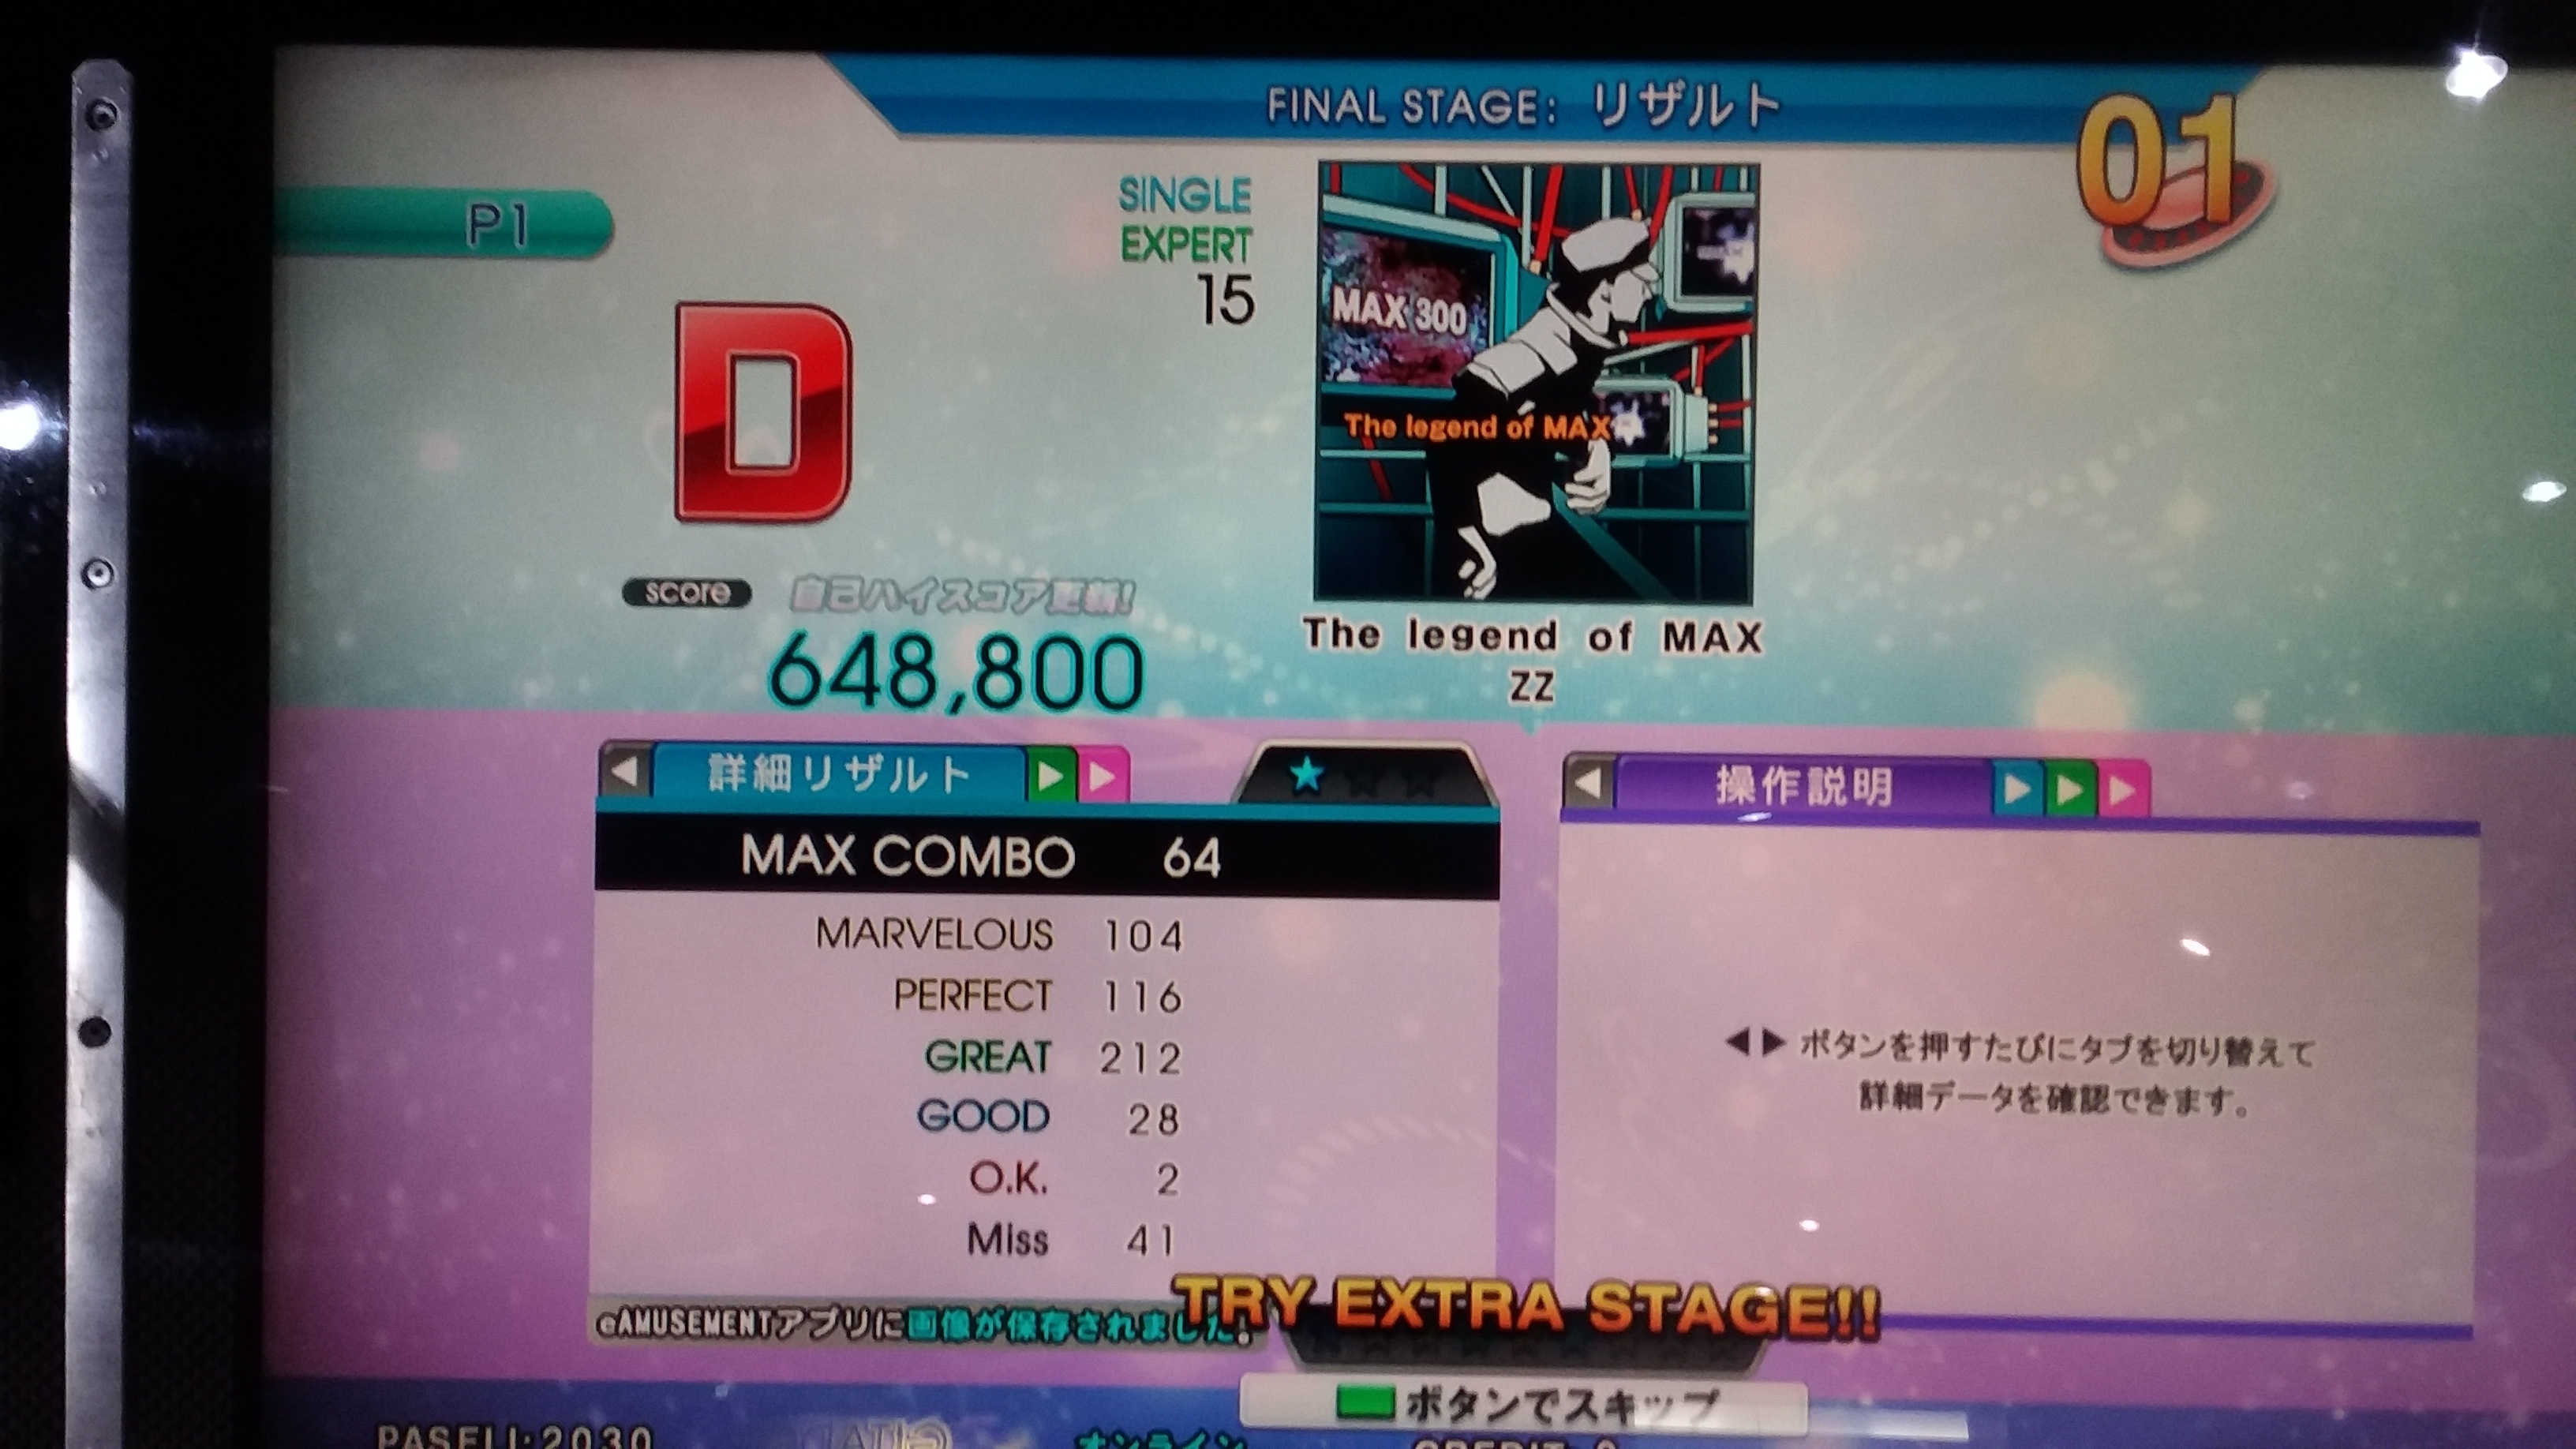 The legend of MAX(激)